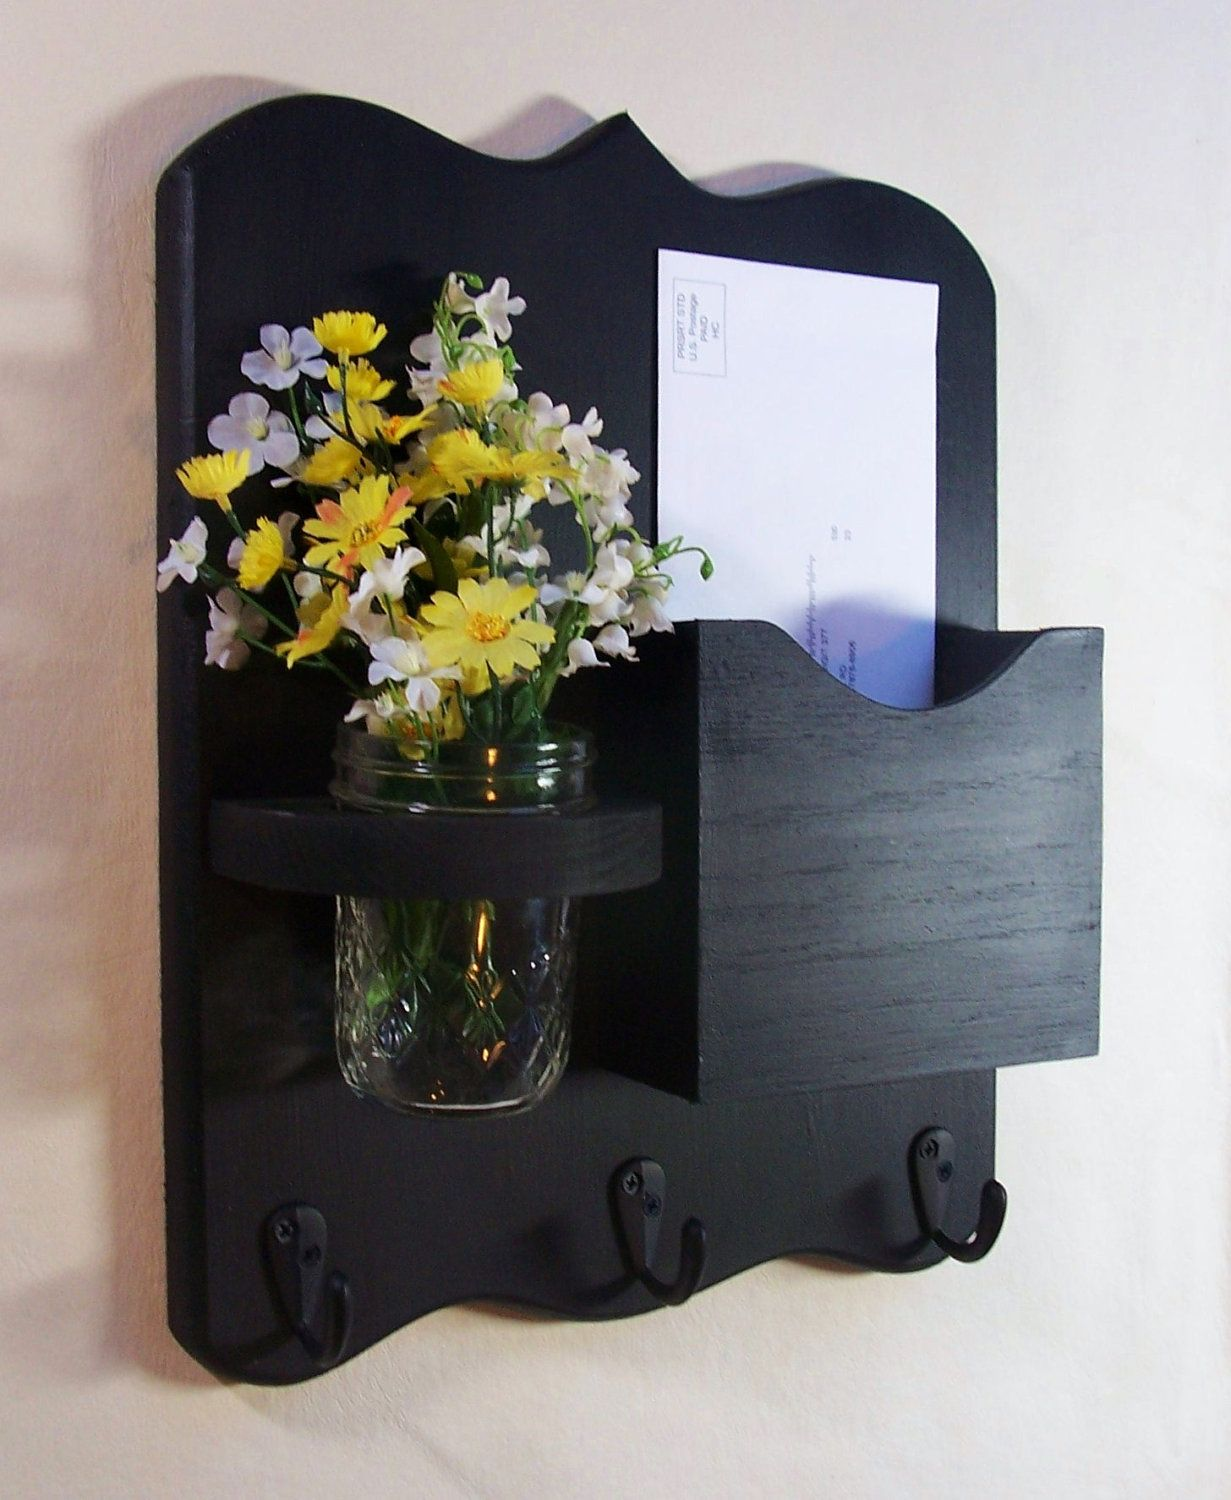 Mail organizer mail and key holder letter holder key hooks jar vase organizer via - Wooden letter and key holder ...